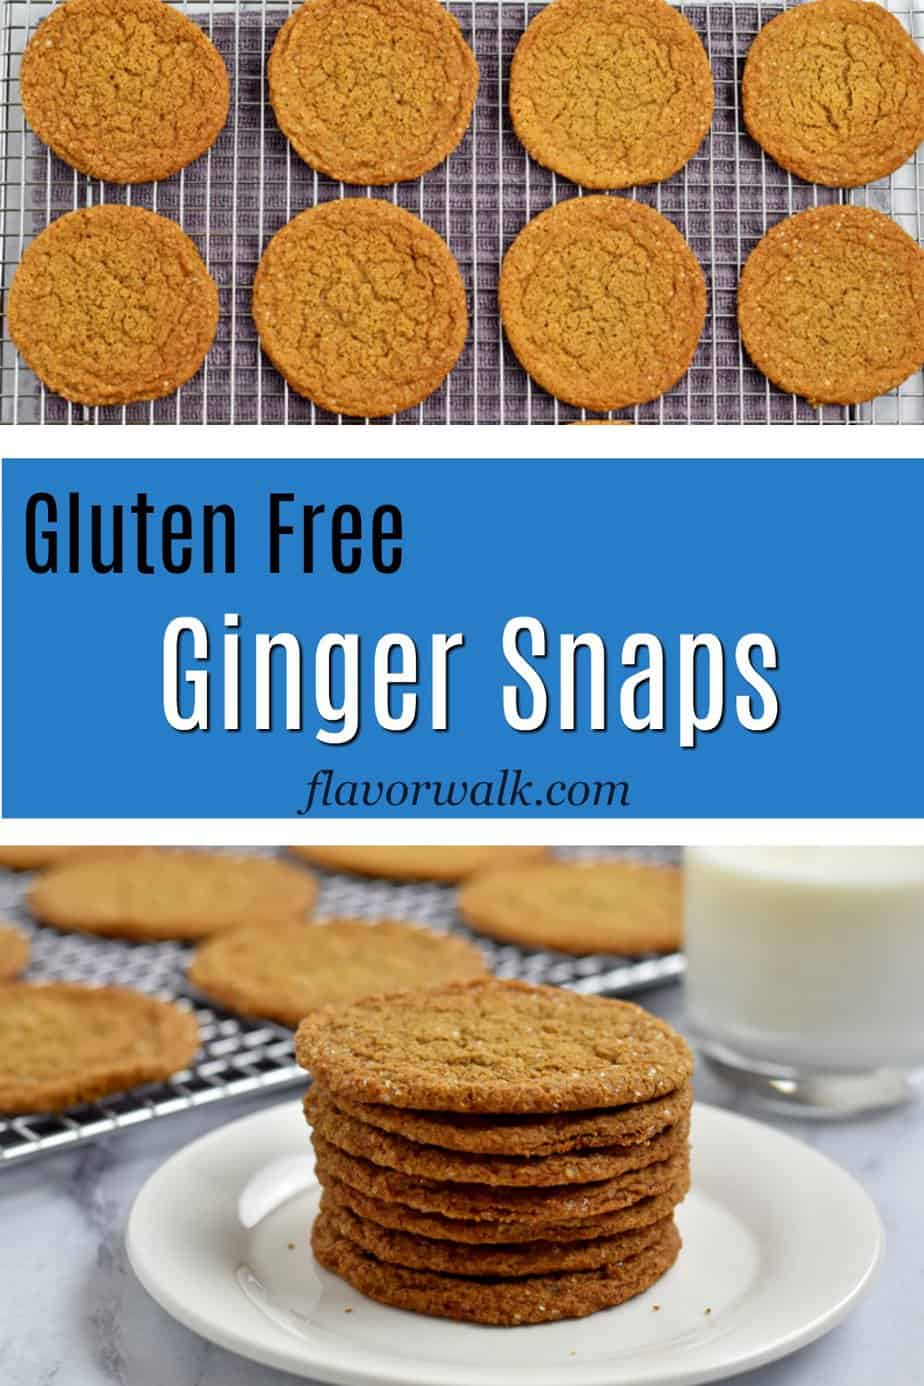 Top image is a wire rack with gluten free ginger snaps, bottom image is stack of gluten free ginger snaps on white plate, middle image is a blue text box